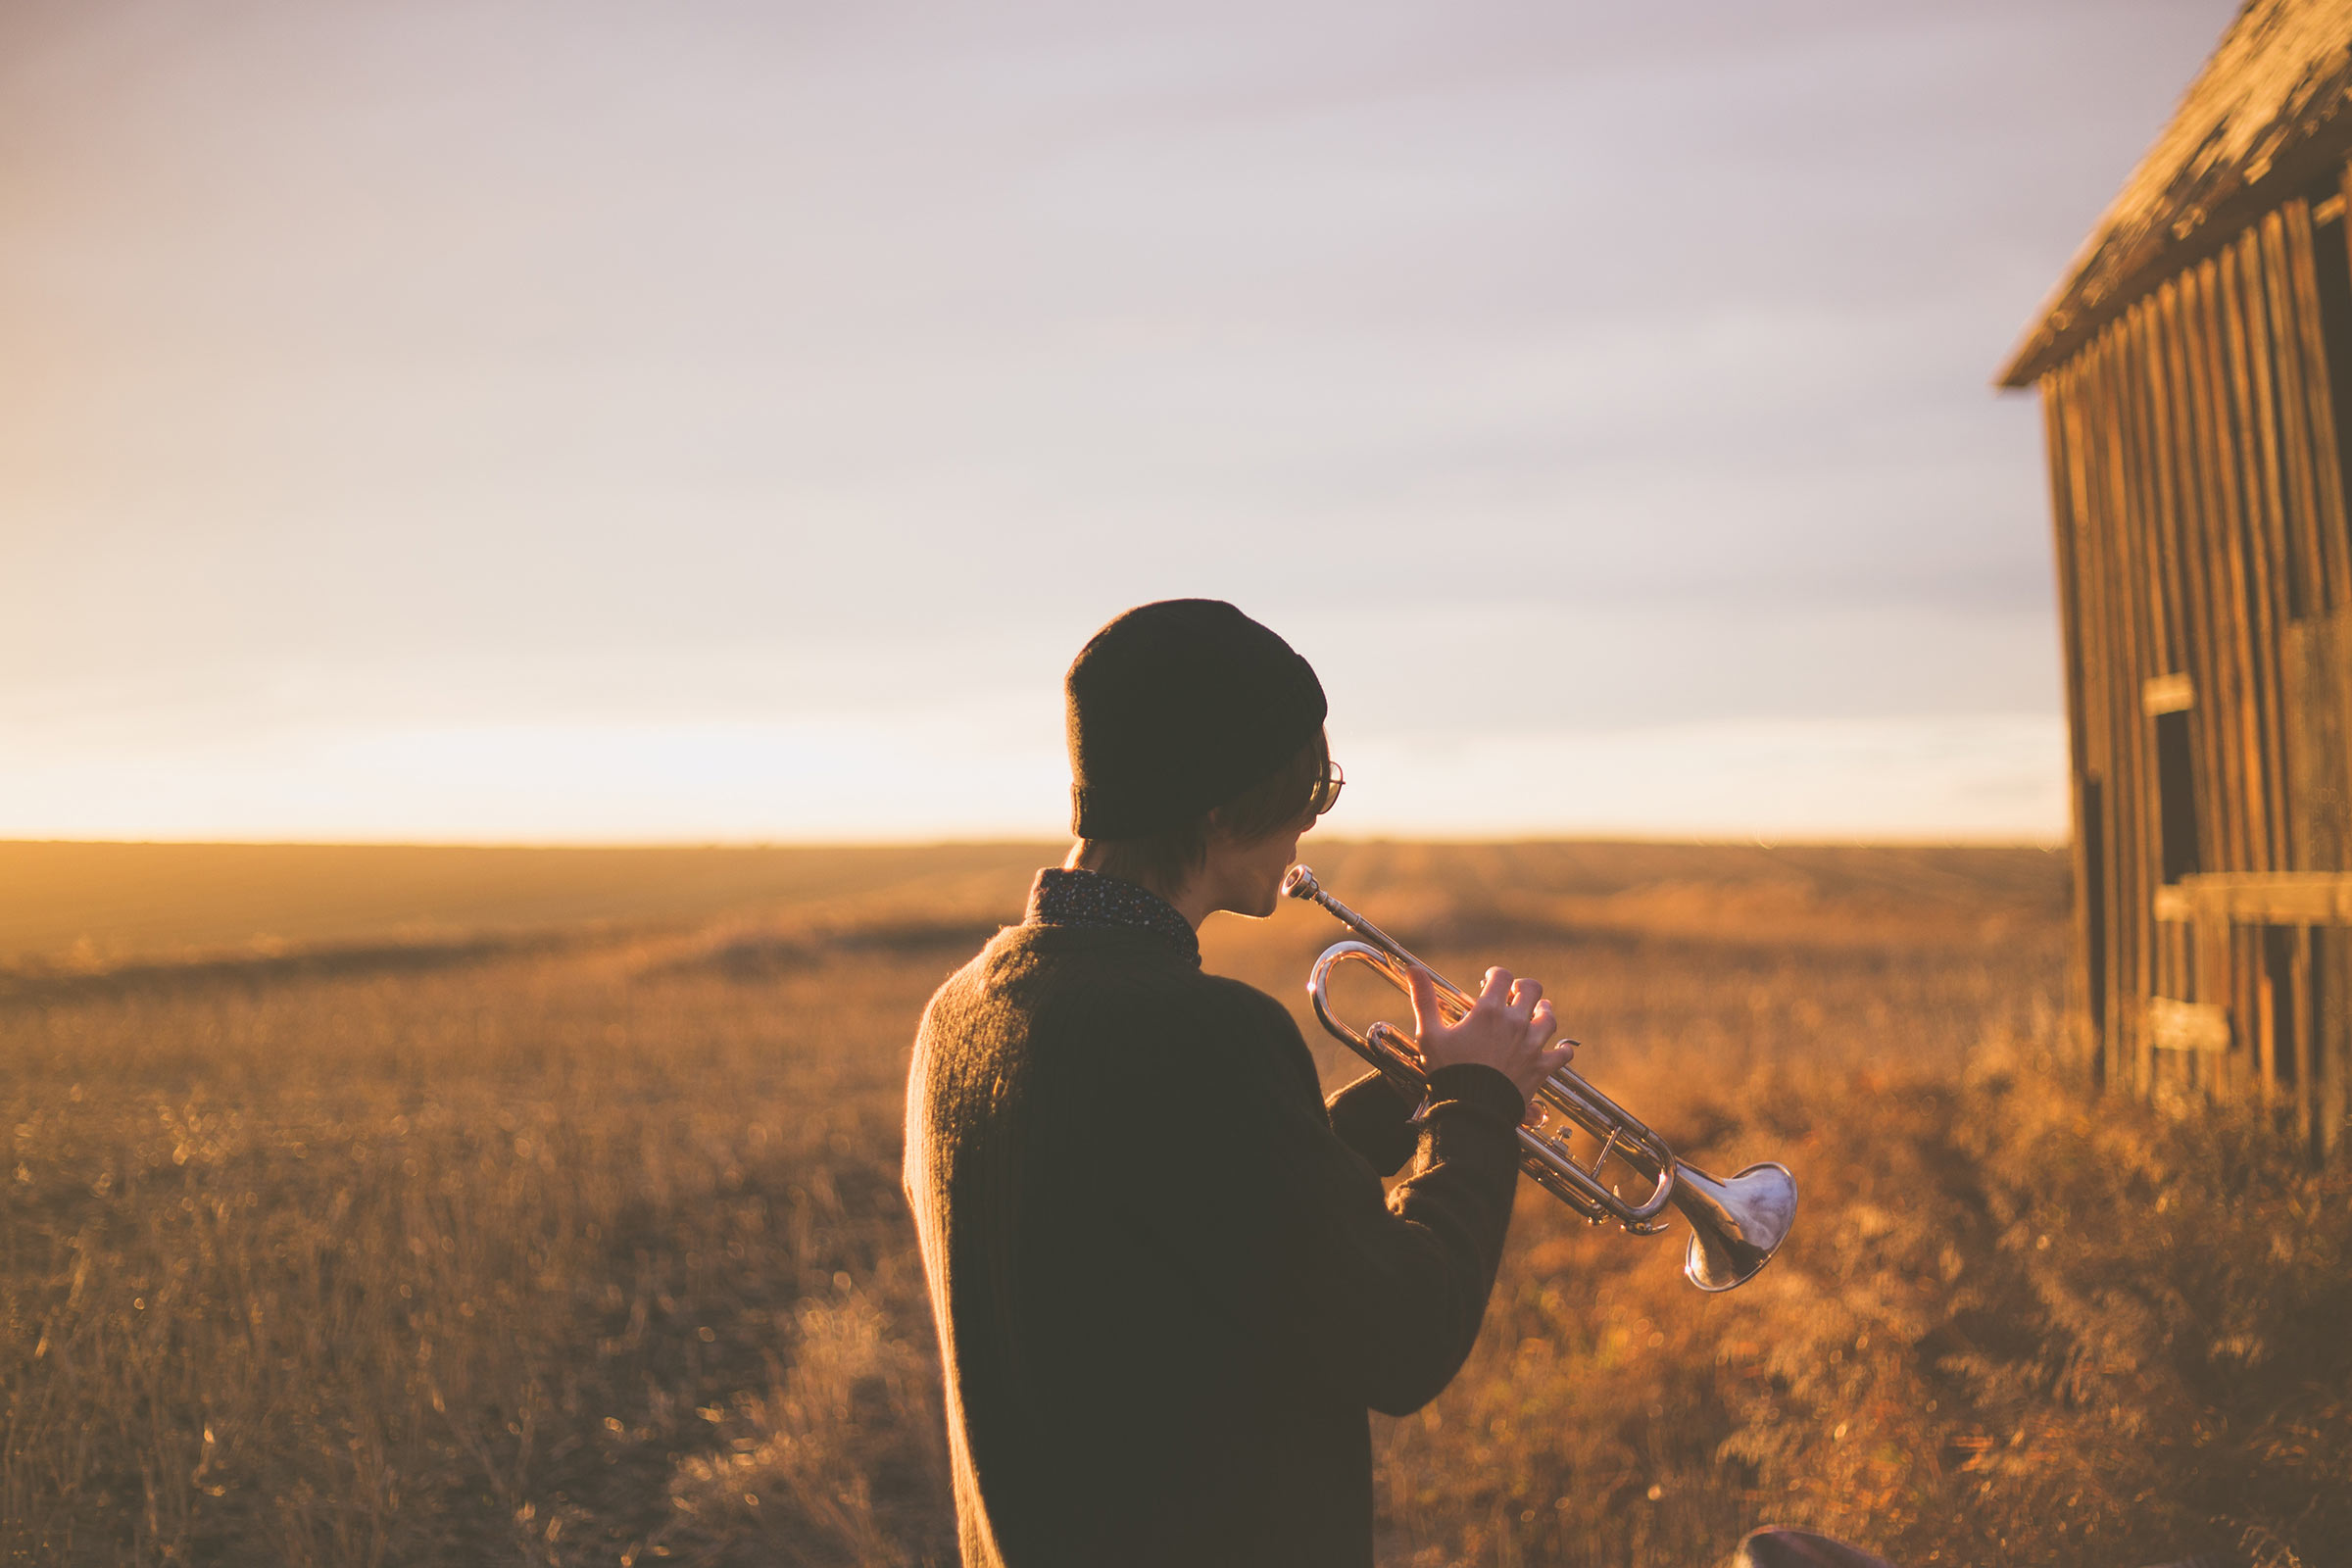 horn player in a field